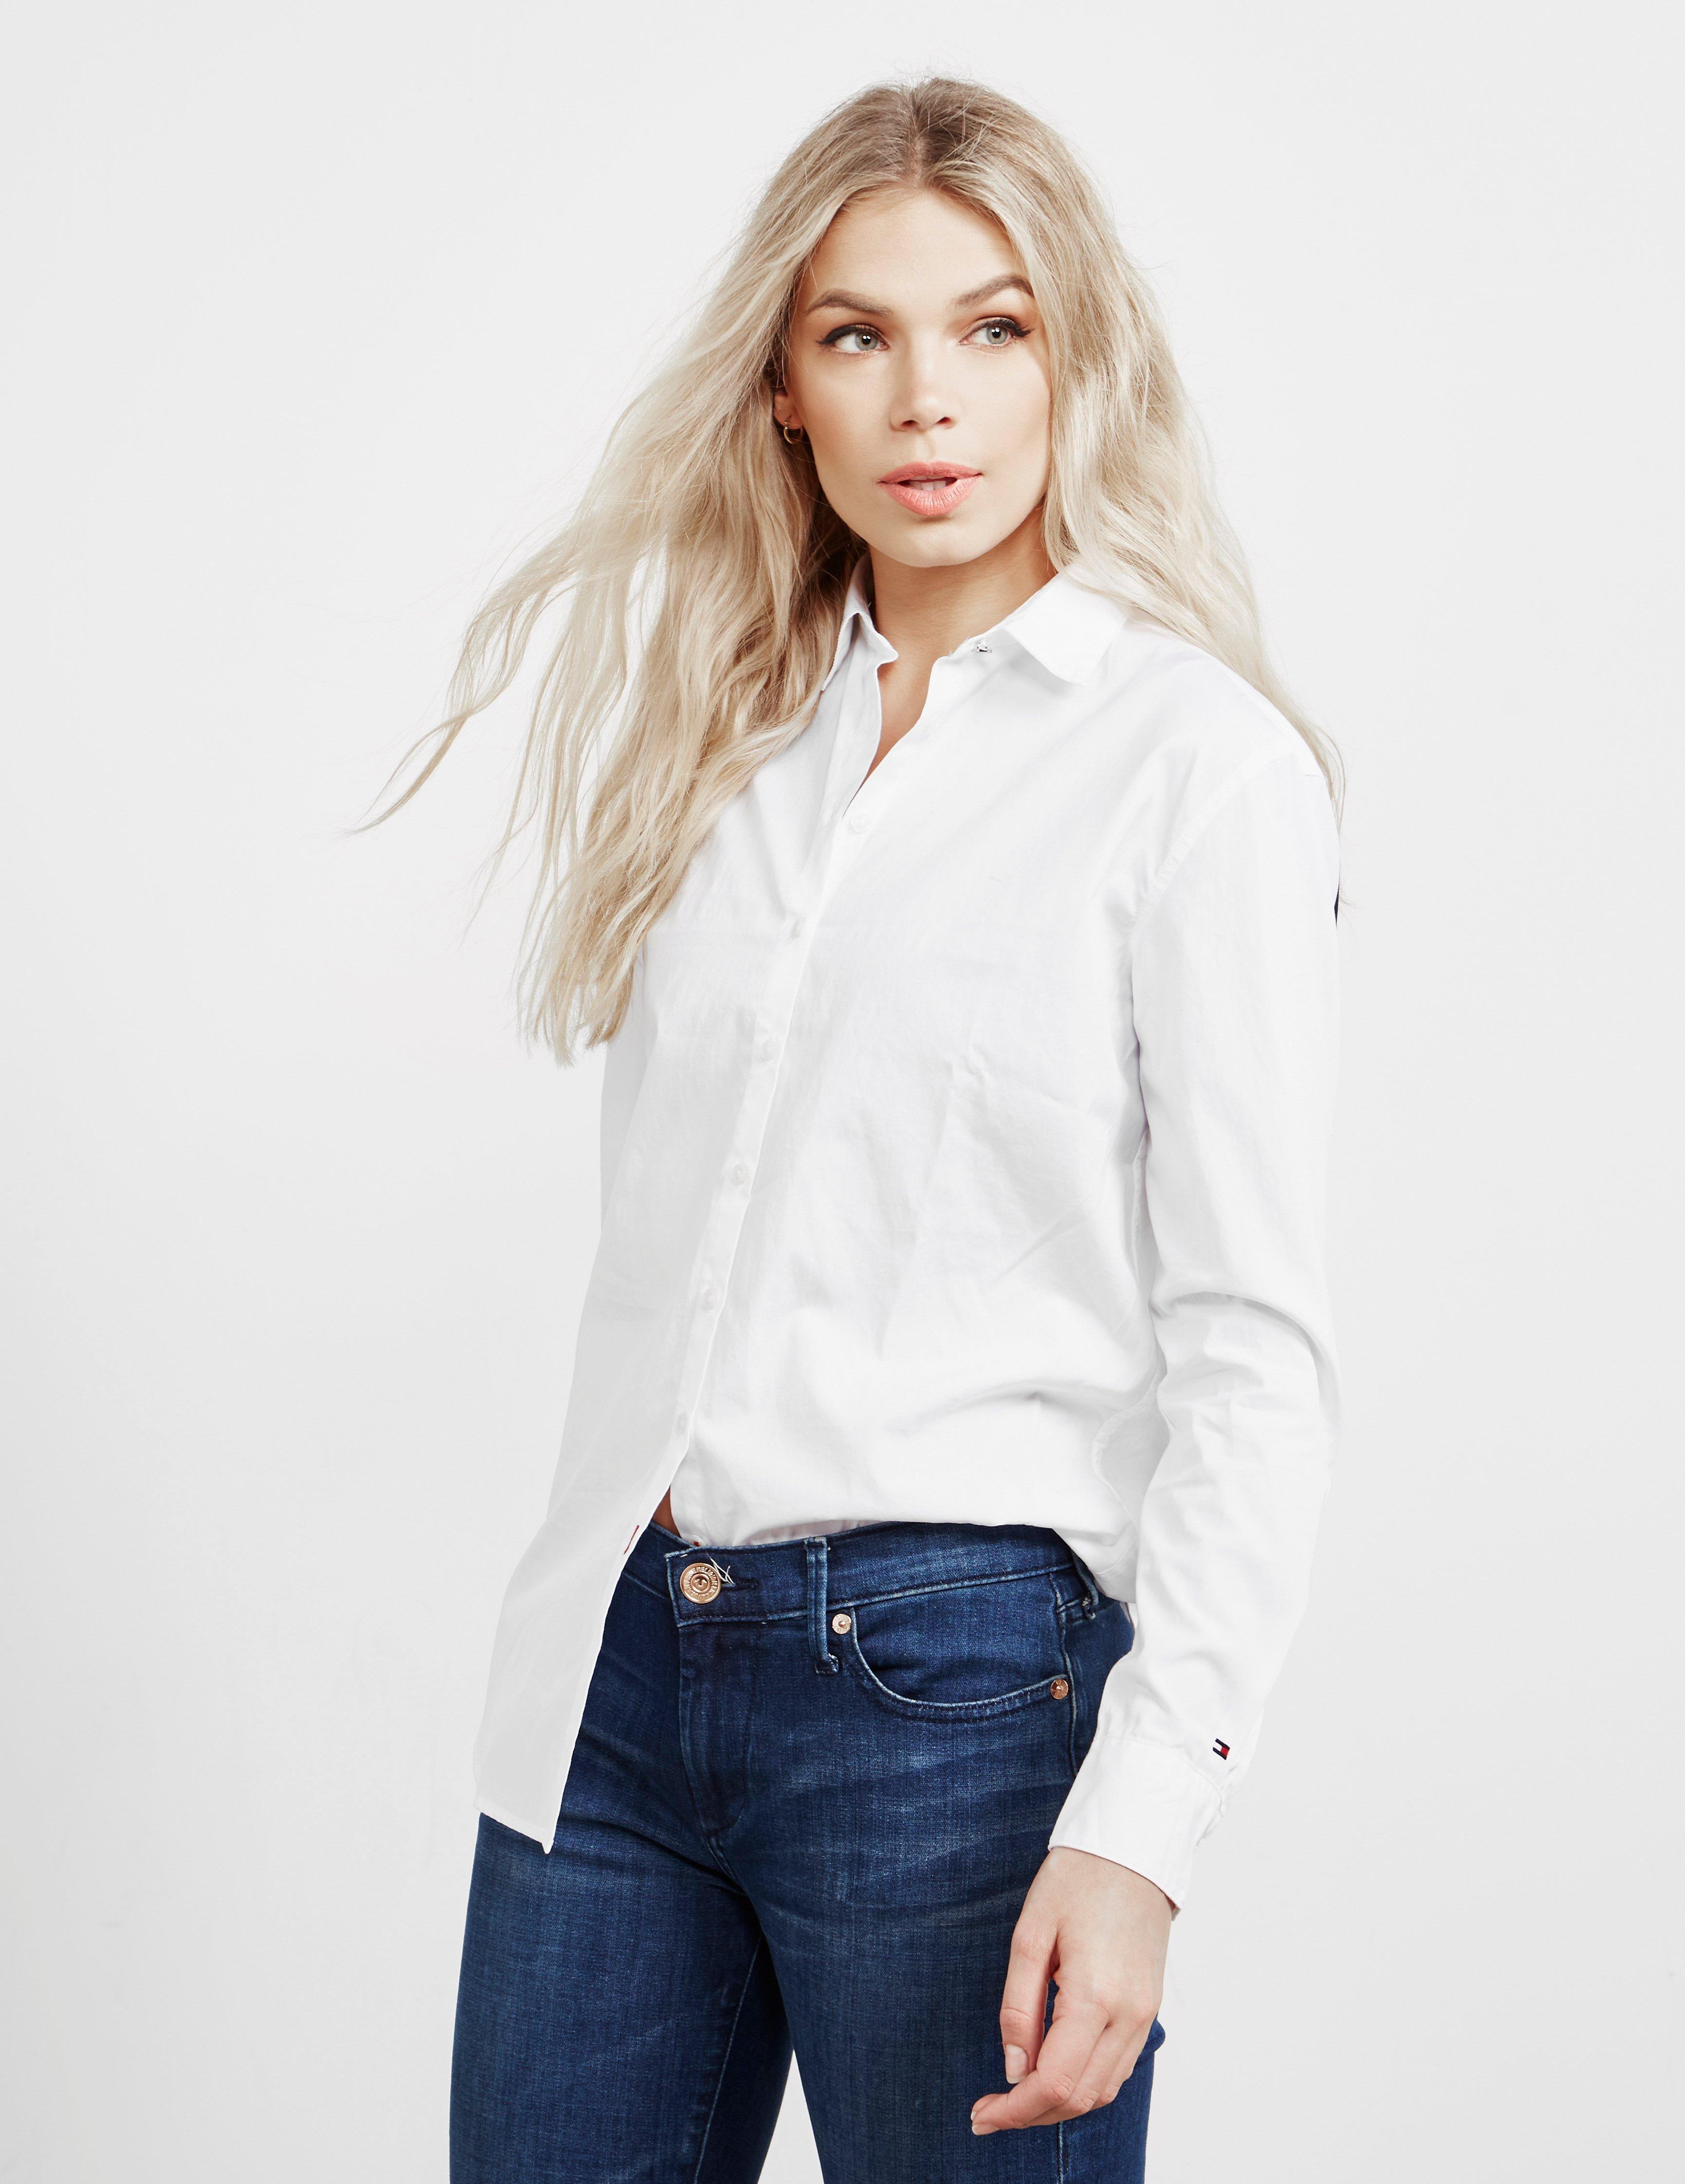 52a474d8 Tommy Hilfiger Icon Girlfriend Long Sleeve Shirt White in White - Lyst